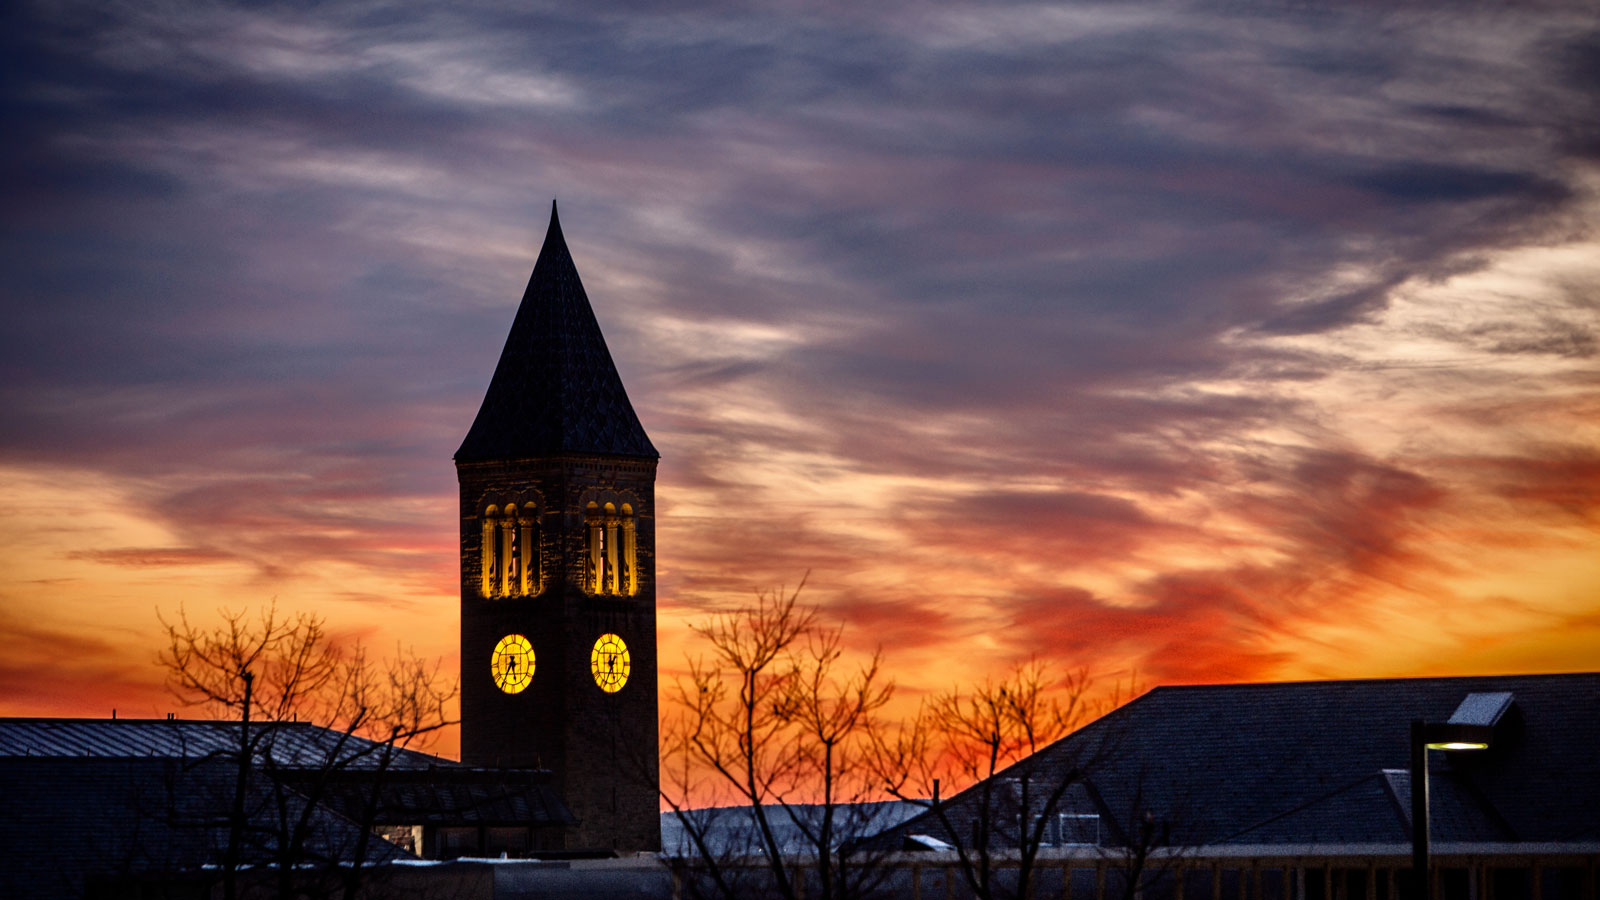 McGraw tower reflection at sunset